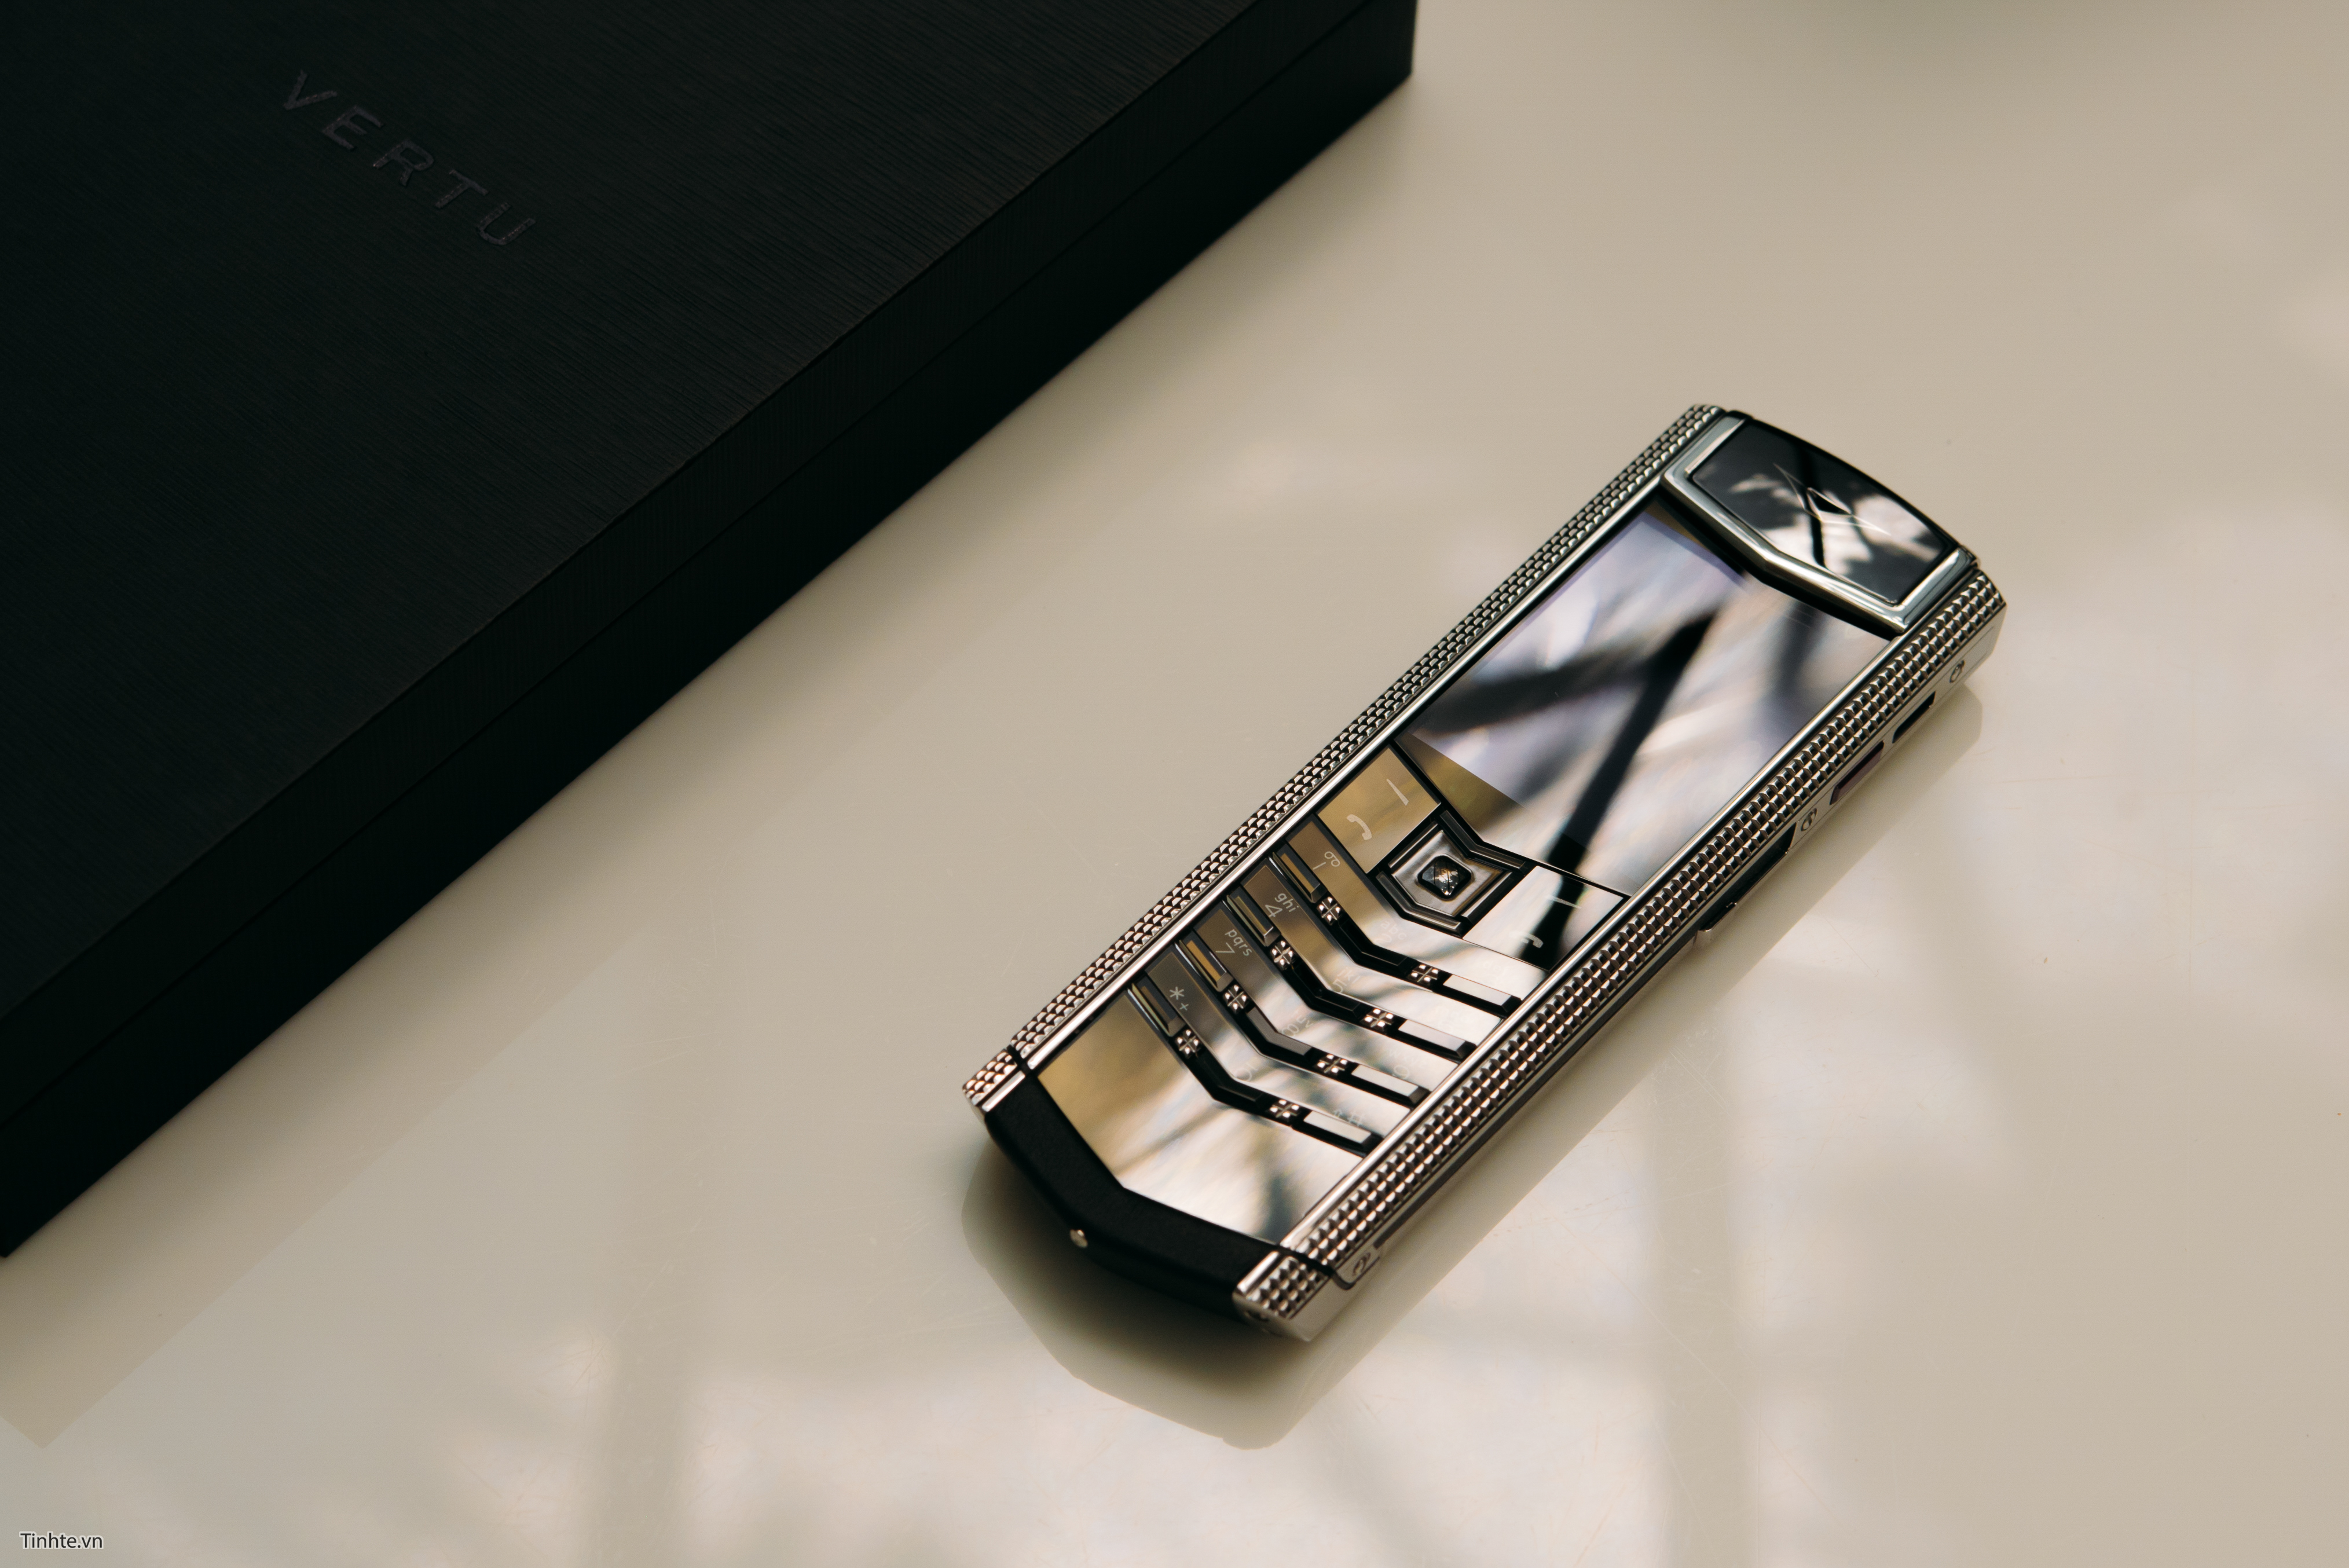 Vertu Aster P brings the company back from the dead - 9to5Google | 2708x4057